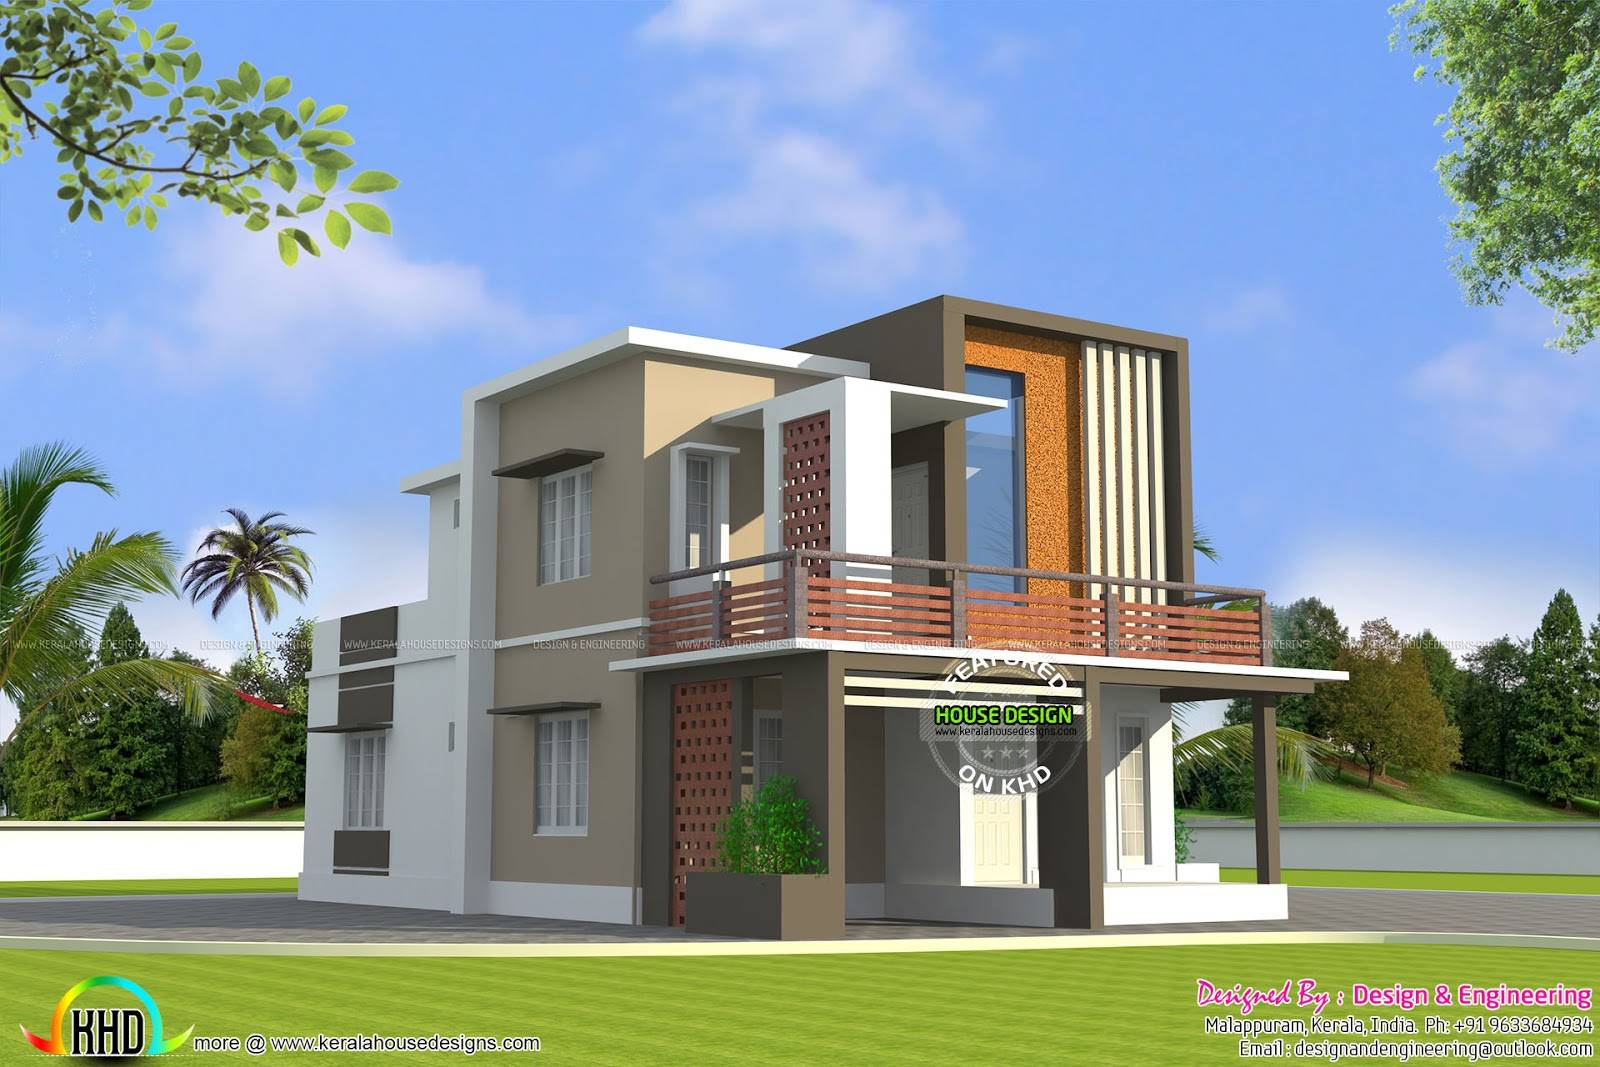 Designs Houses Outlook House Design: house and home designs